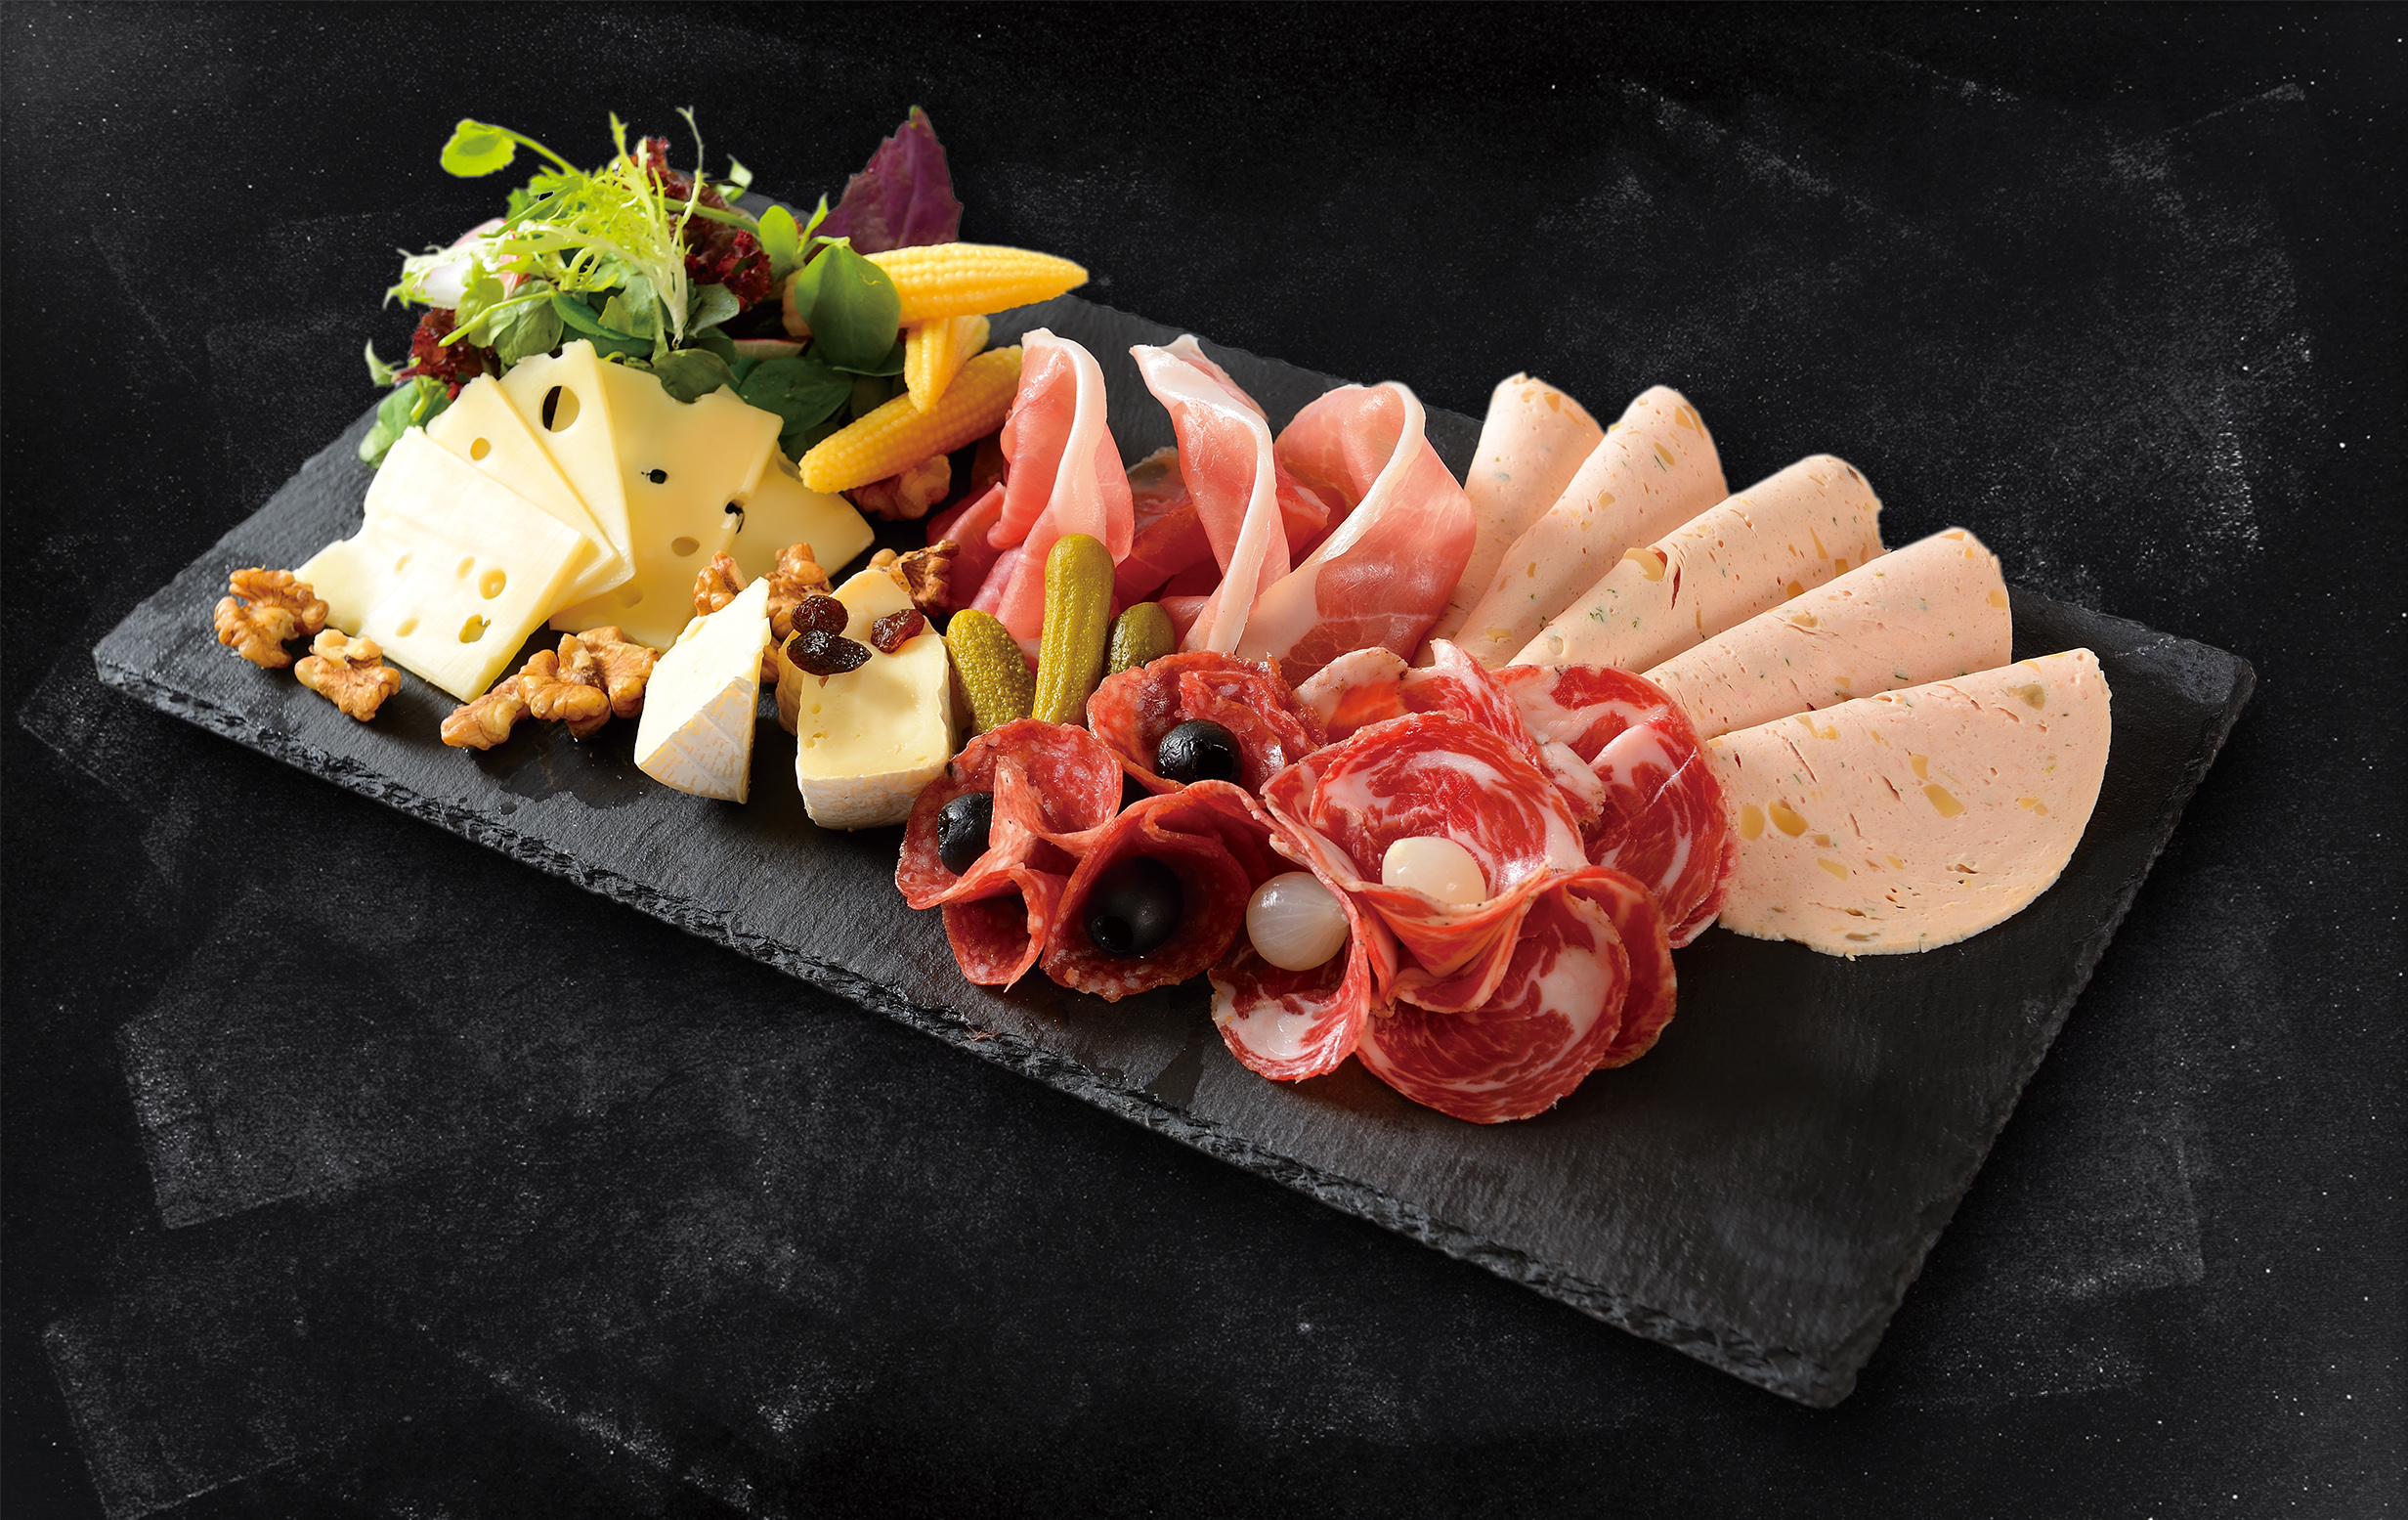 <b>Cold Cuts with Cheese</b><br/>A selection of four kinds of cold Cut Meats, Grilled